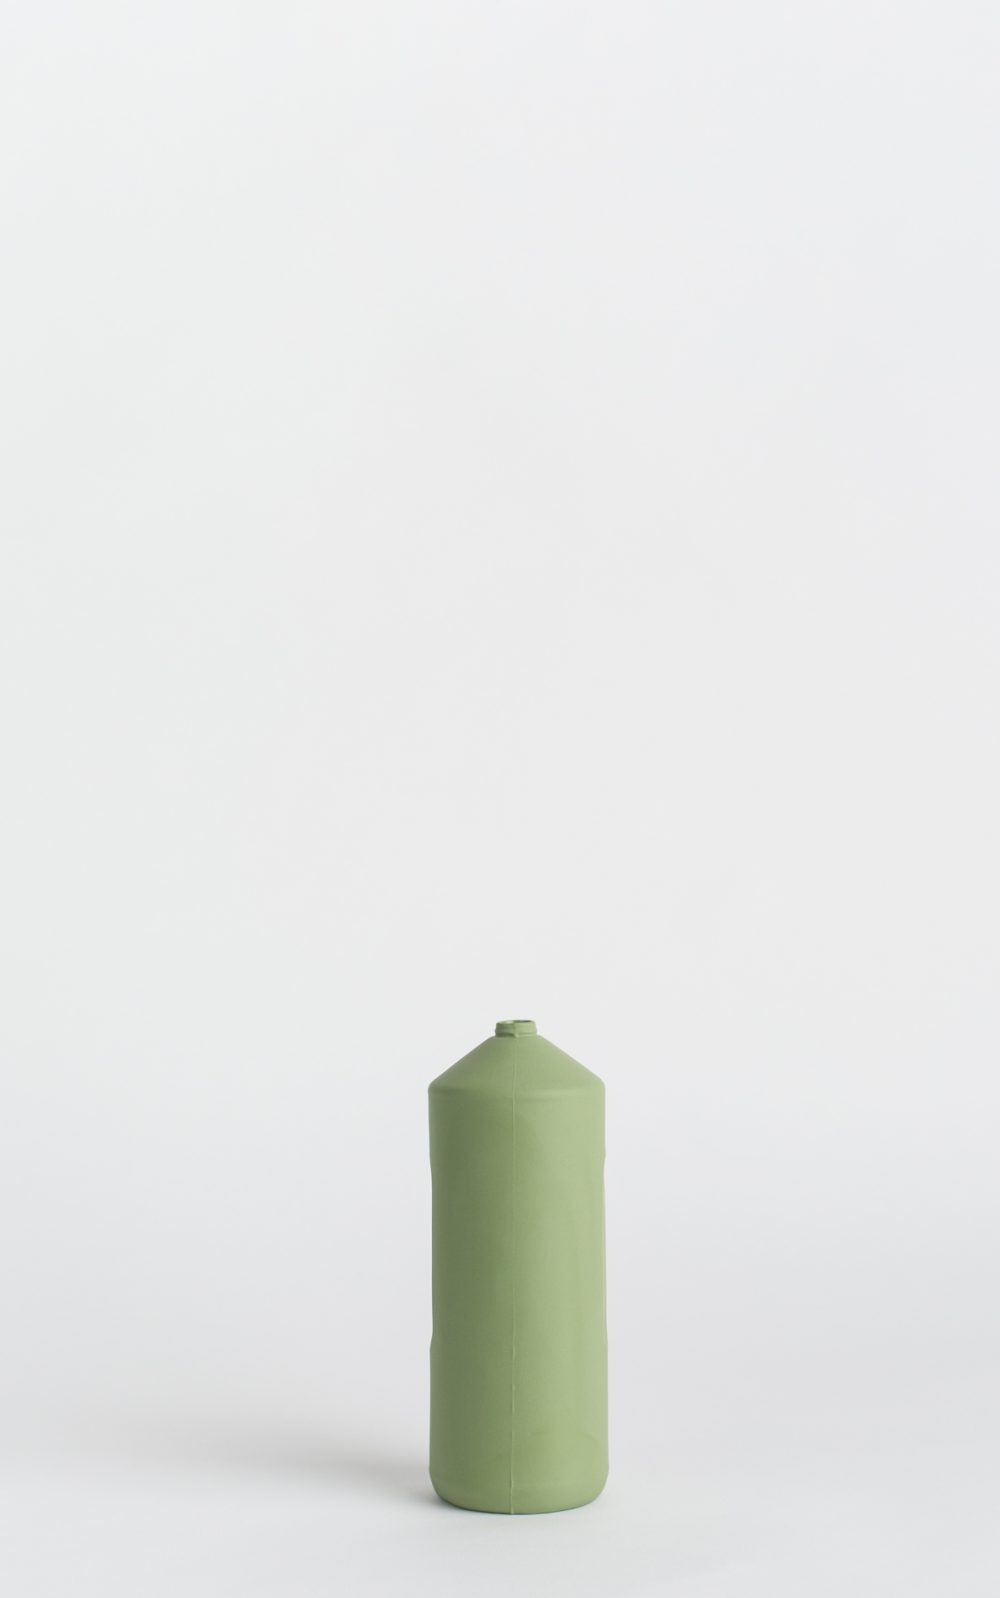 bottle vase #2 dark green army green